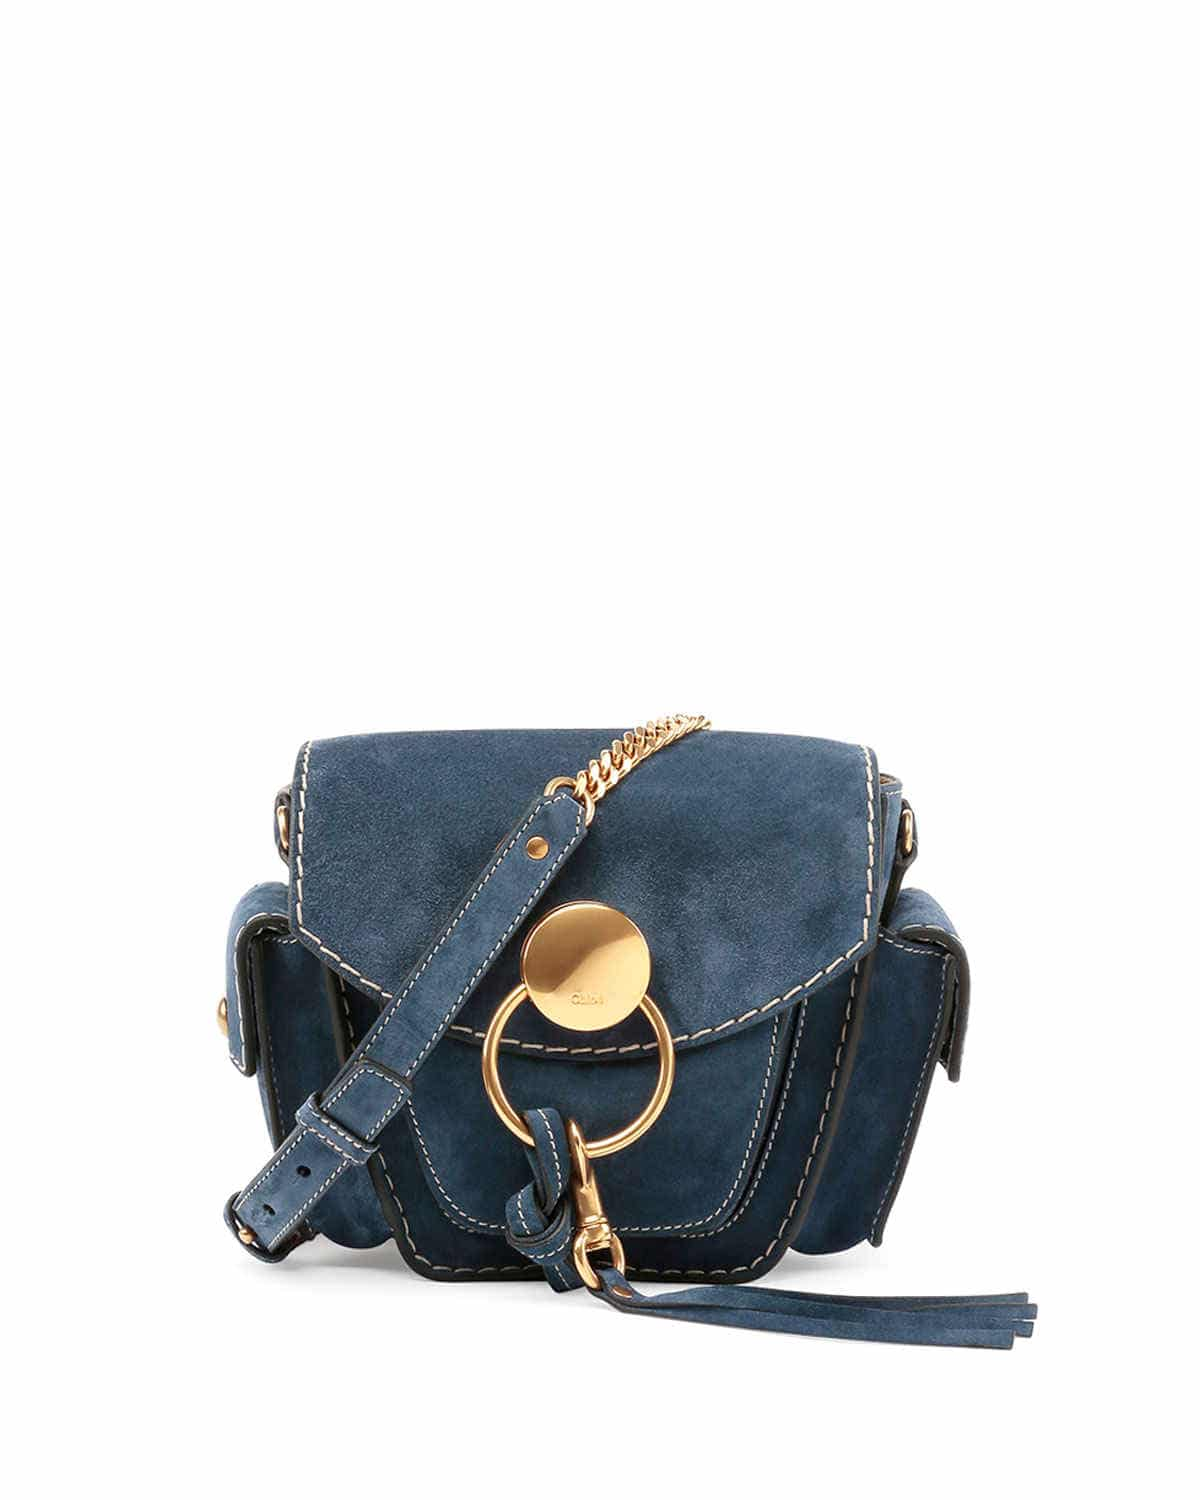 knockoff chloe bags - Chloe Bag Price List Reference Guide | Spotted Fashion